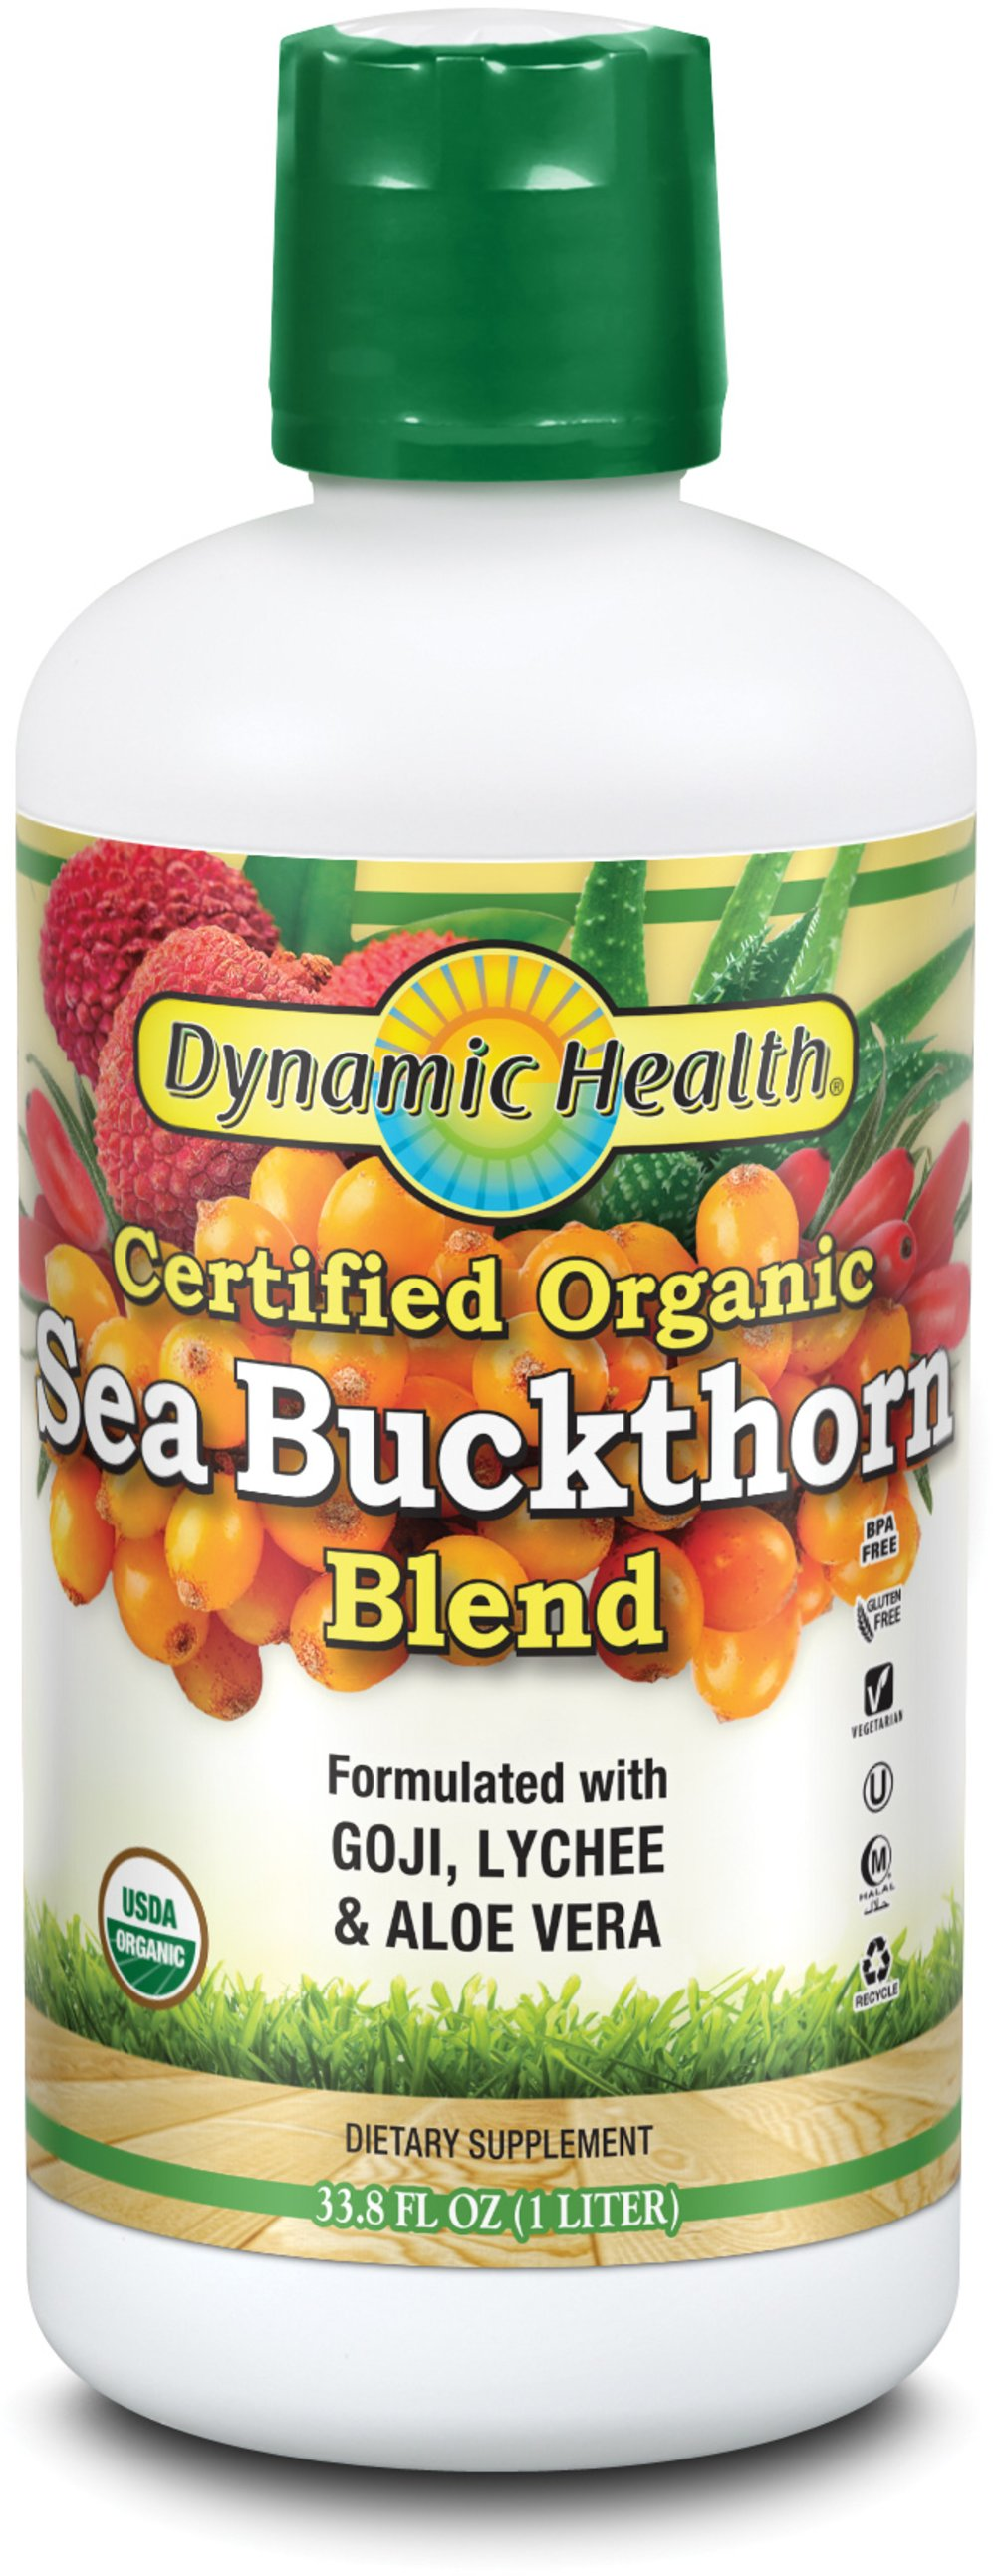 Organic Sea Buckthorn Juice <p><strong>From the Manufacturer:</strong></p><p>Organic Certified Seabuckthorn fortified with Goji, Lychee+ Aloe Vera. The Seabuckthorn Berry is used traditionally to help promote healthy living. Rich in minerals, vitamins, amino acids, and bioflavonoids.<br /></p><p>Manufactured by Dynamic Health Laboratories, Inc.</p> 33.8 fl oz. Liquid